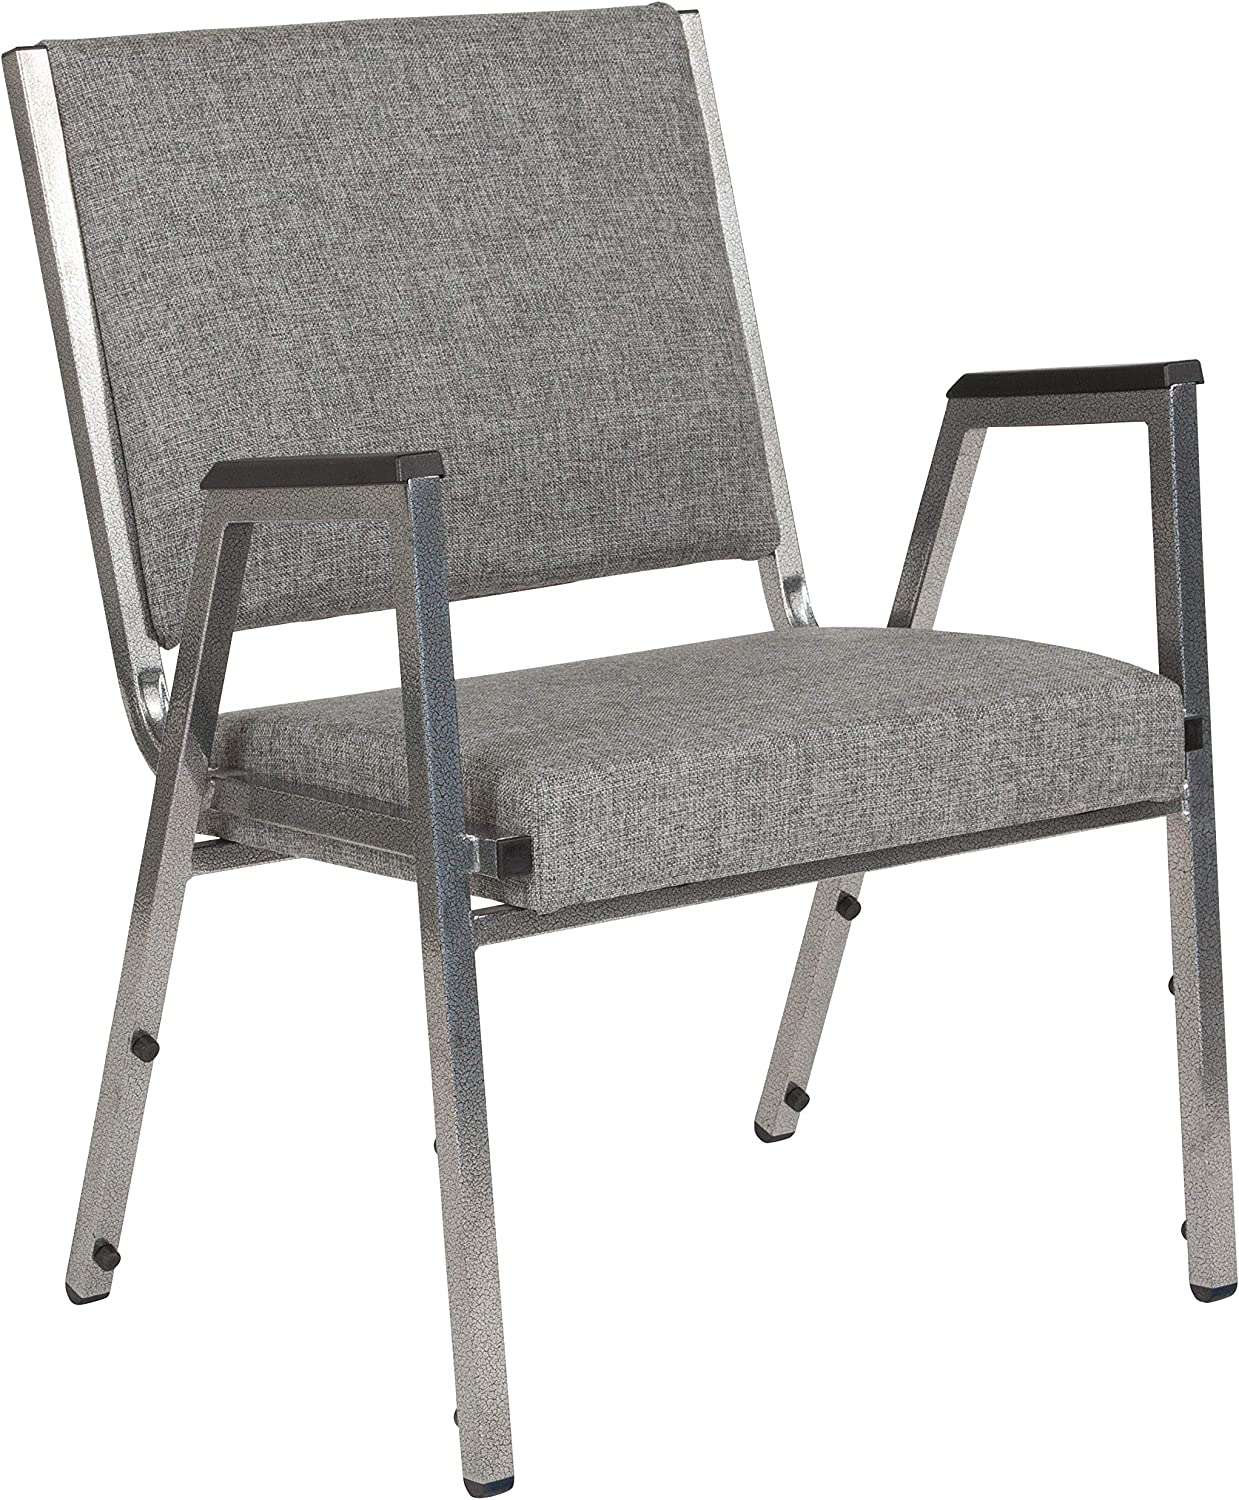 Flash Furniture HERCULES Series 1500 lb. Rated Gray Antimicrobial Fabric Bariatric Medical Reception Arm Chair